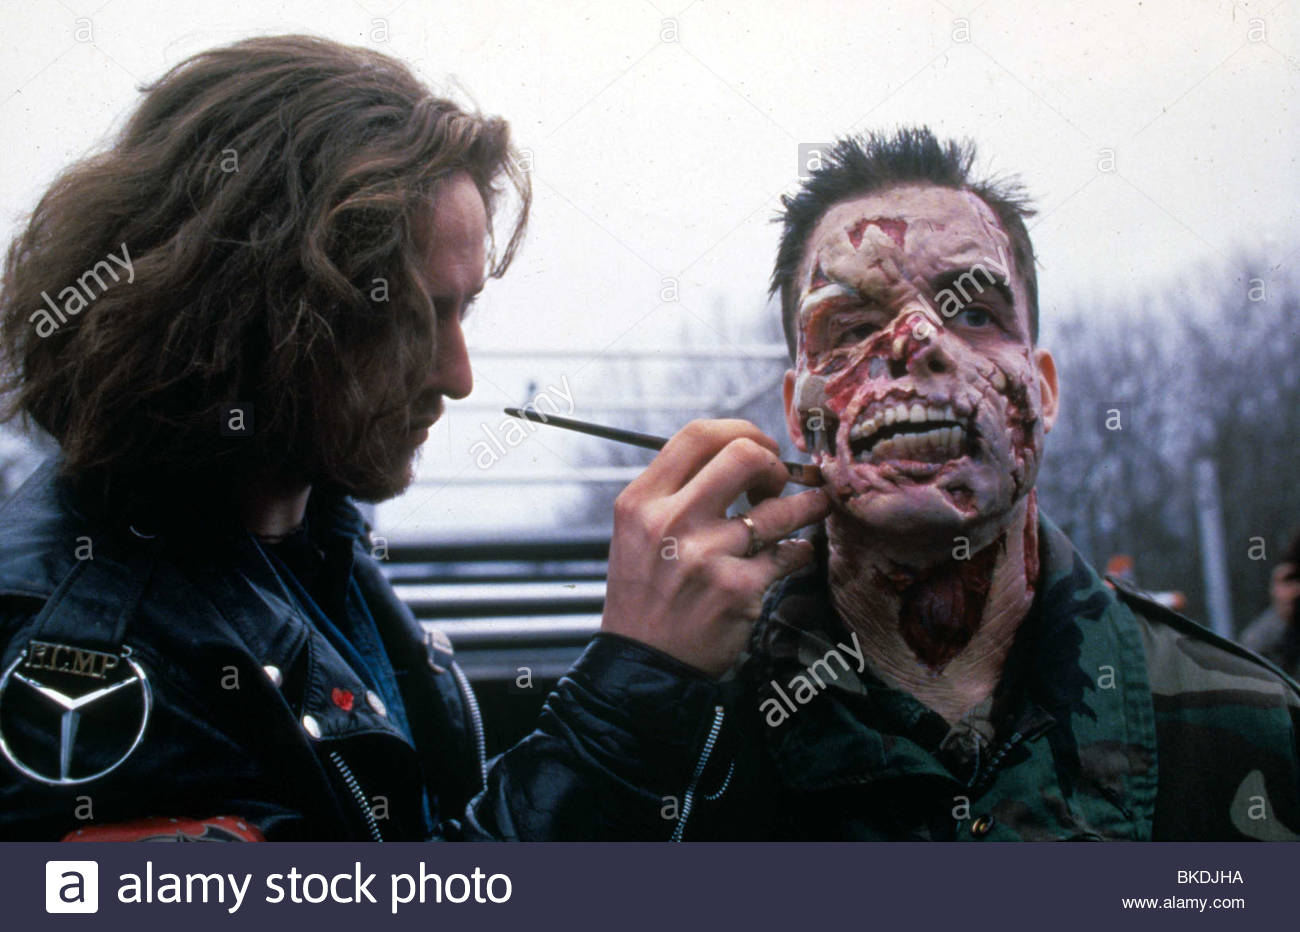 MAKE-UP THE X-FILES - Stock Image